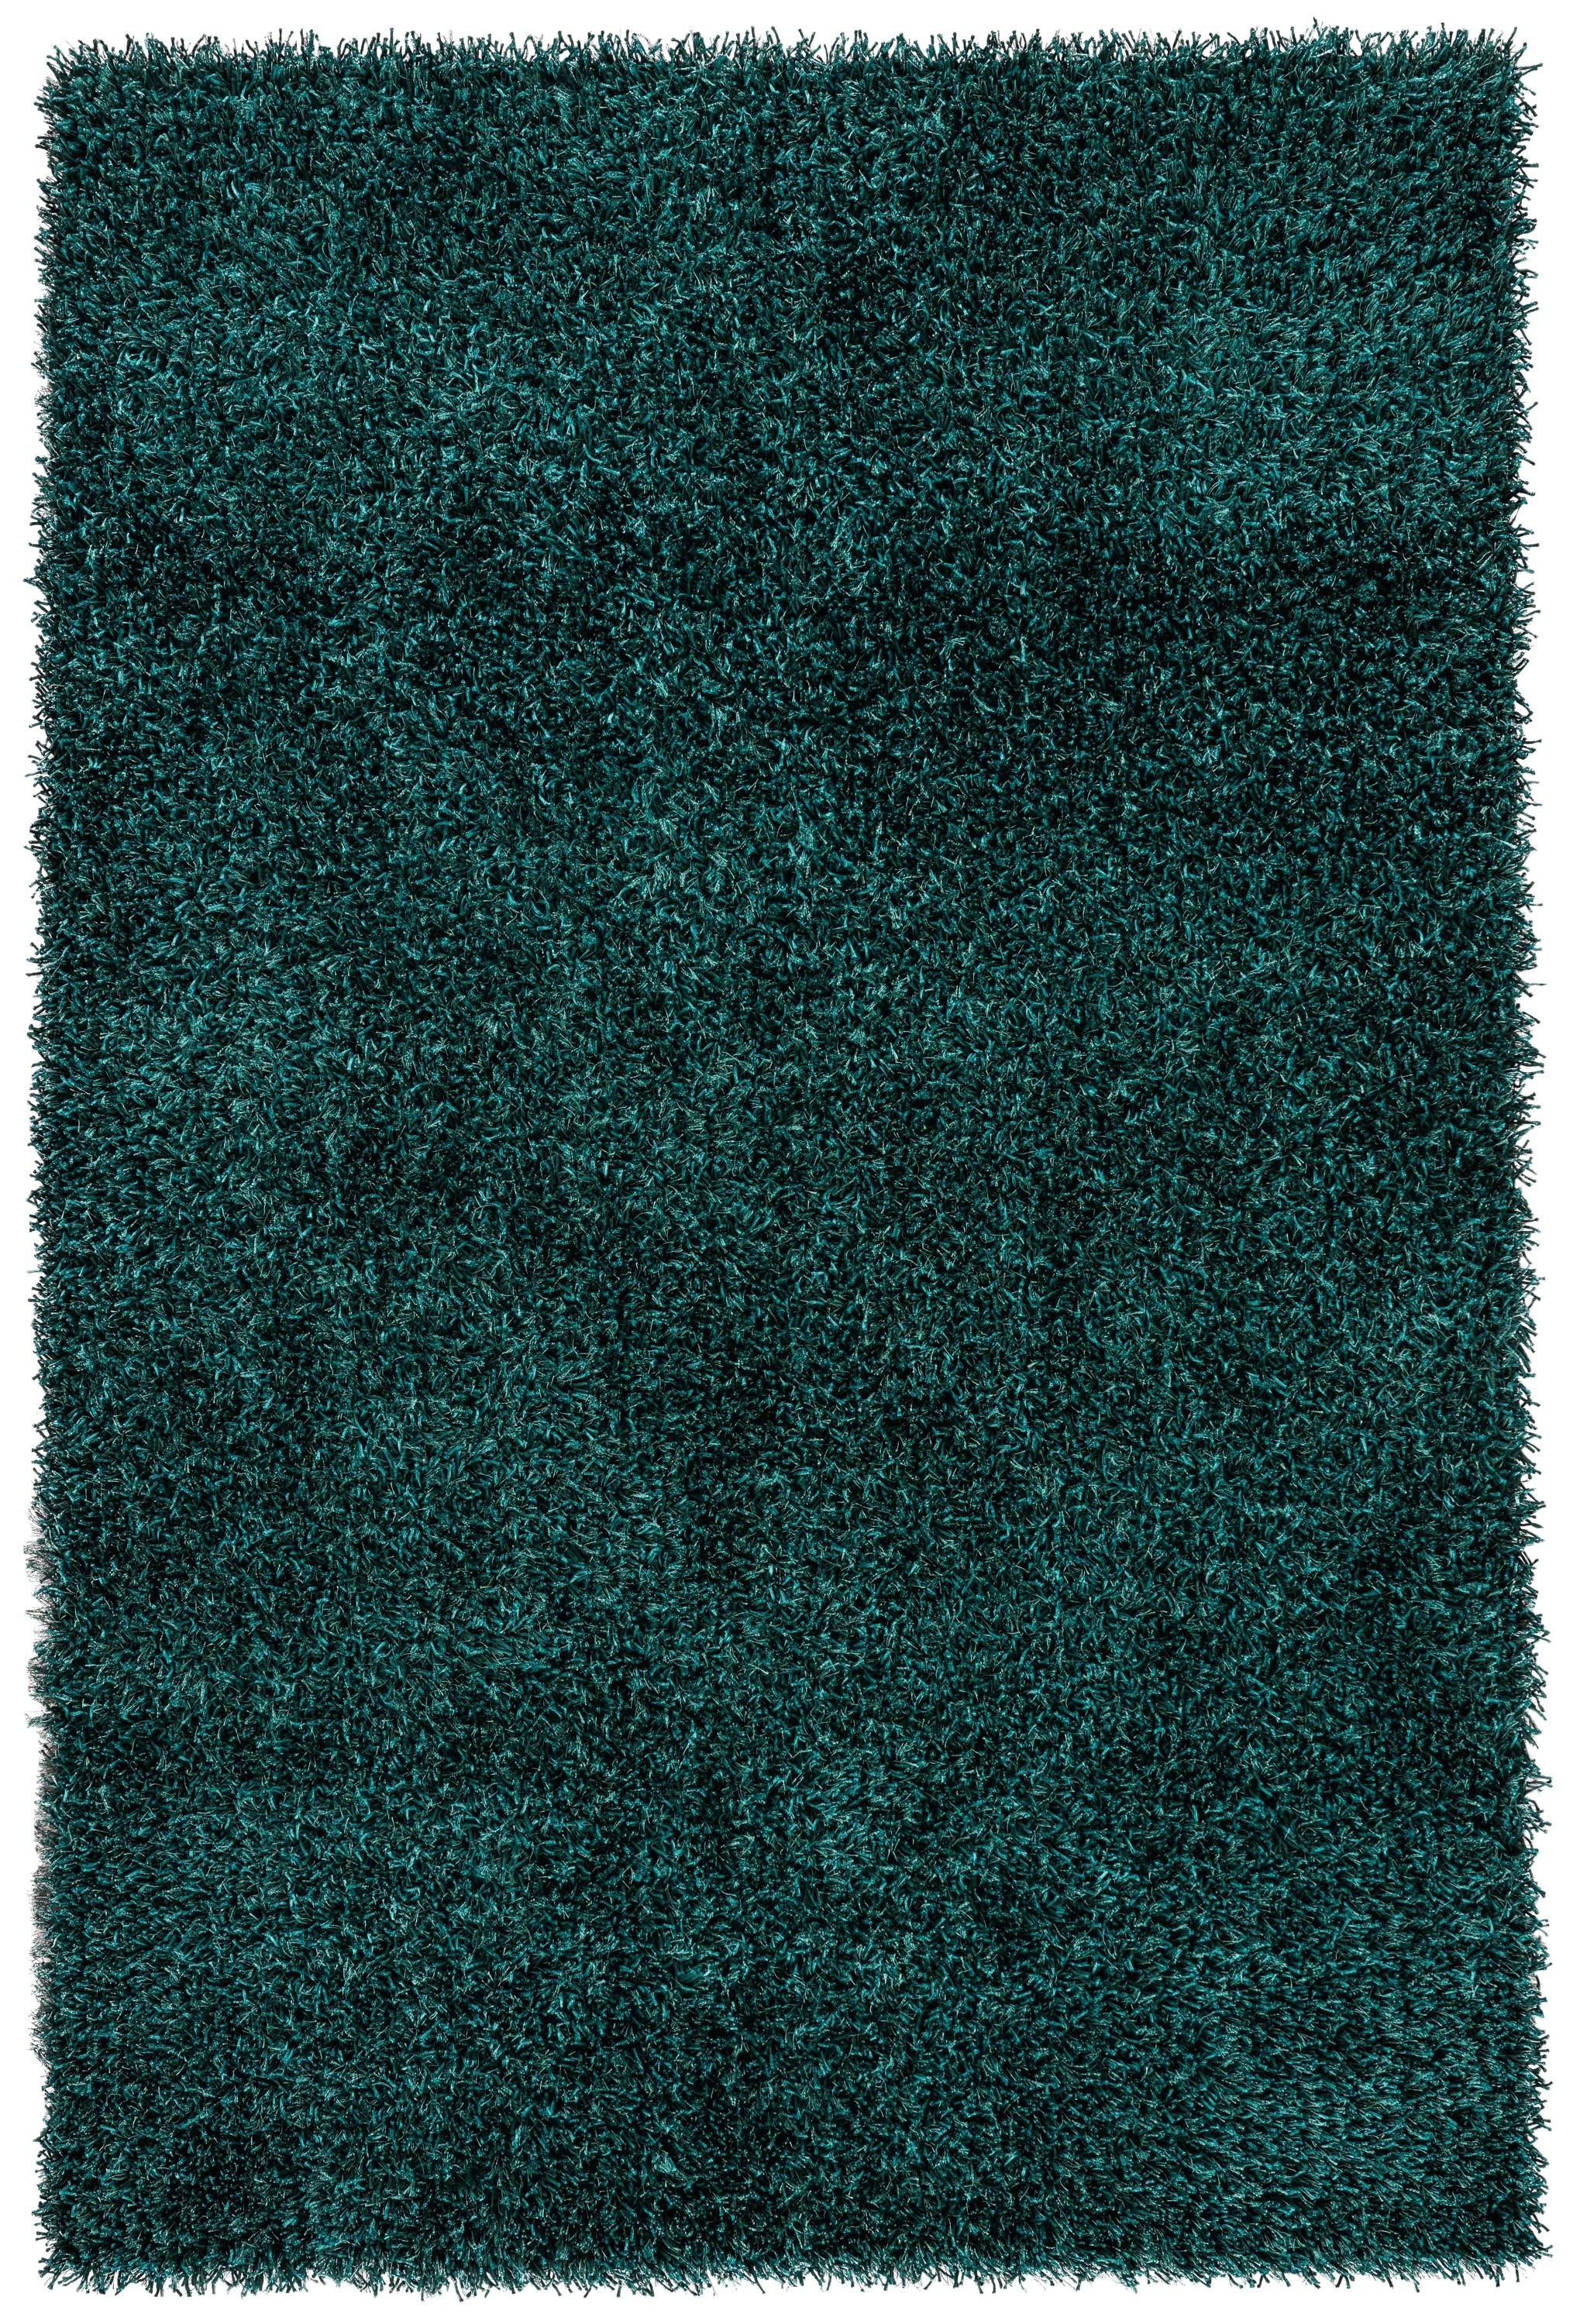 Teal Color Area Rugs Woodside Hand Woven Teal Blue Area Rug